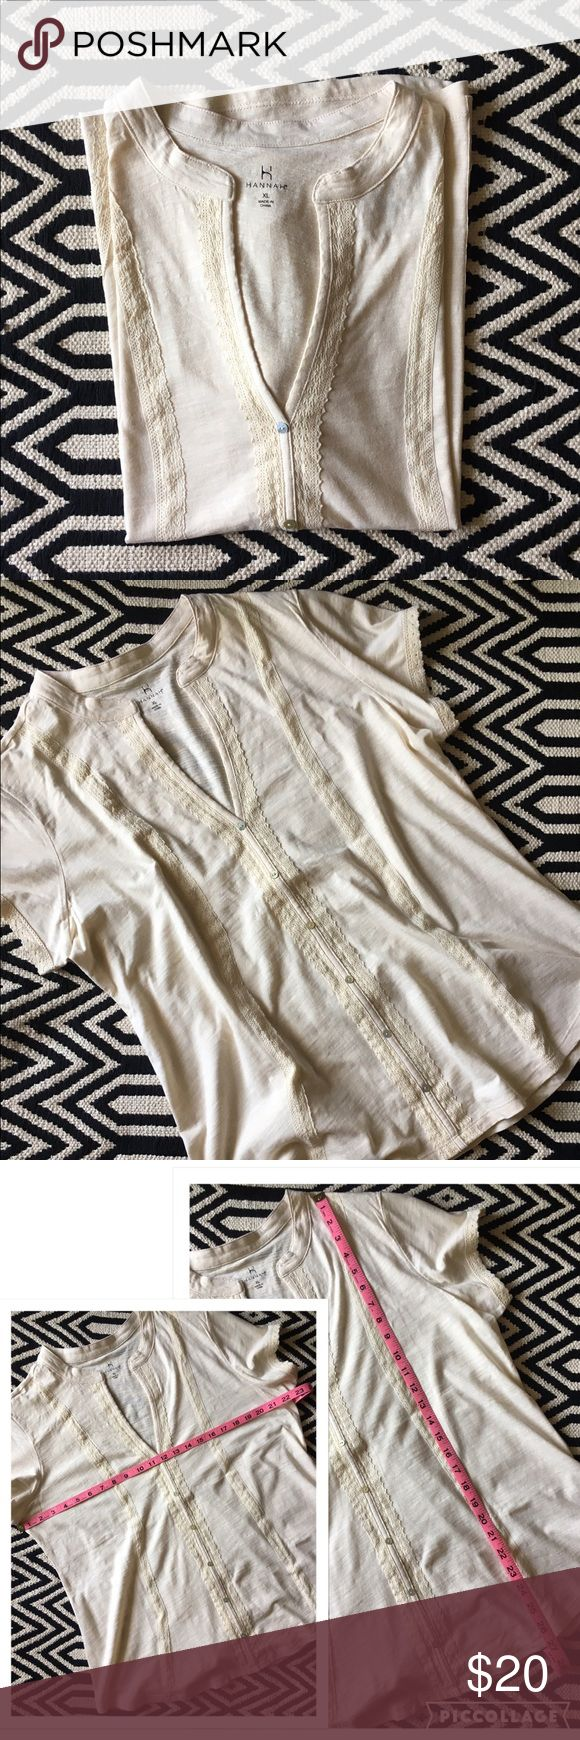 Hannah cream short sleeve top NWT. Hannah white smoke short sleeve top. Size XL. Body & trim 100% cotton. Hannah Tops Tees - Short Sleeve